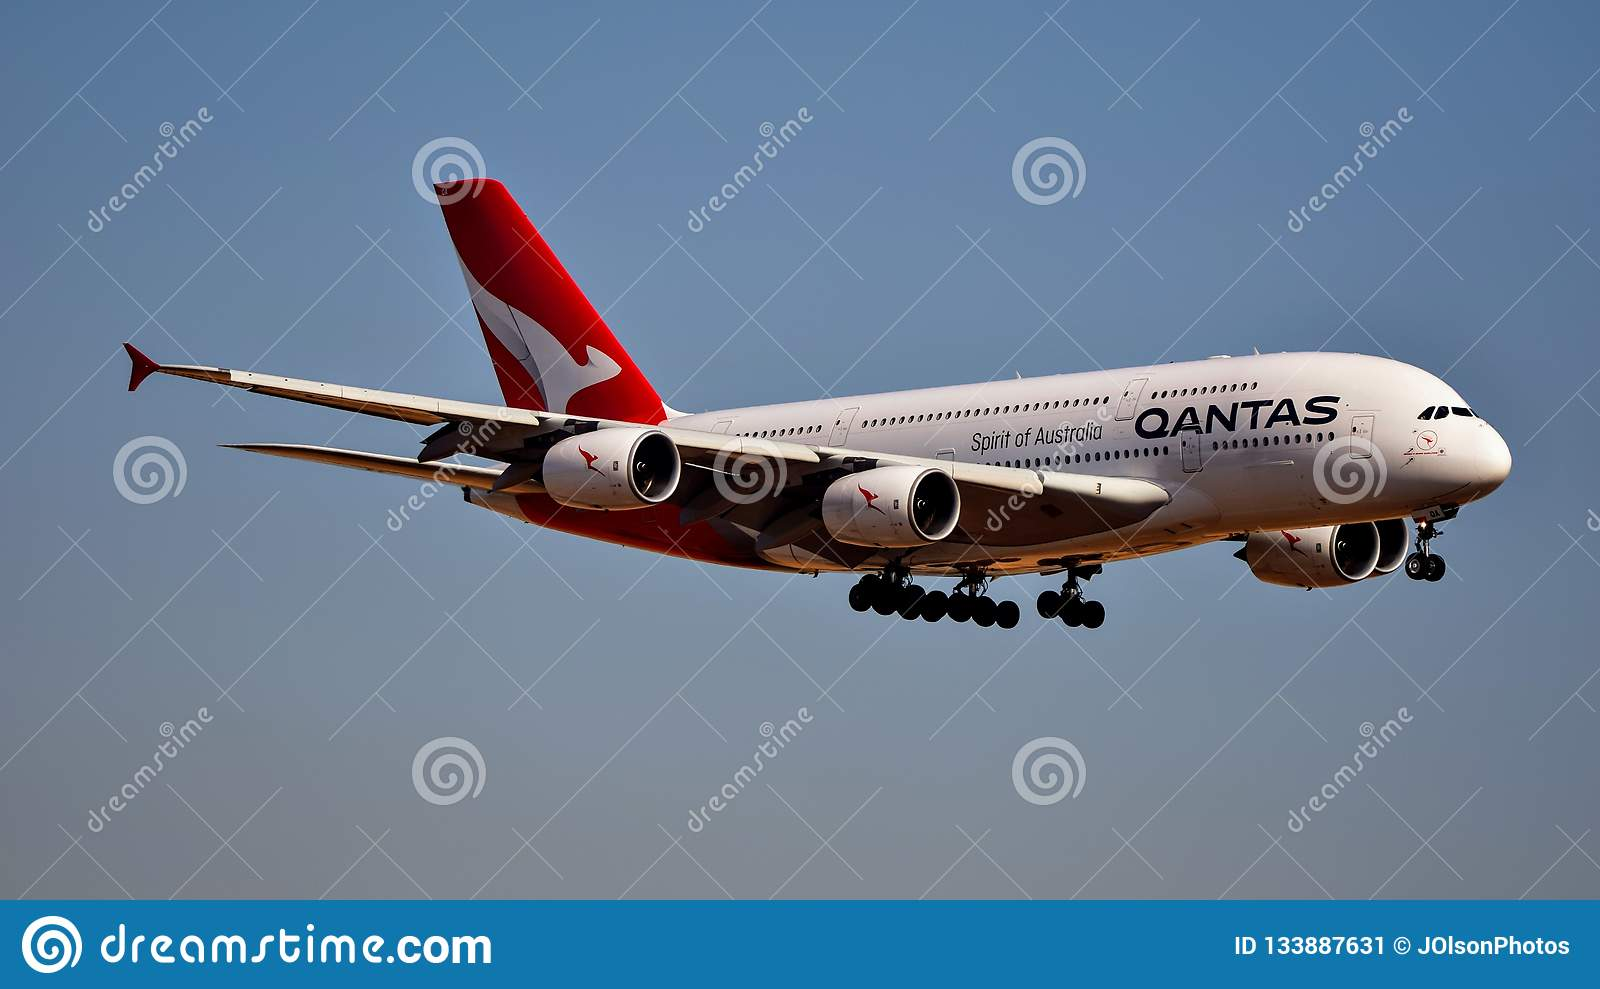 Qantas Airlines Airbus A380 Coming In For A Landing